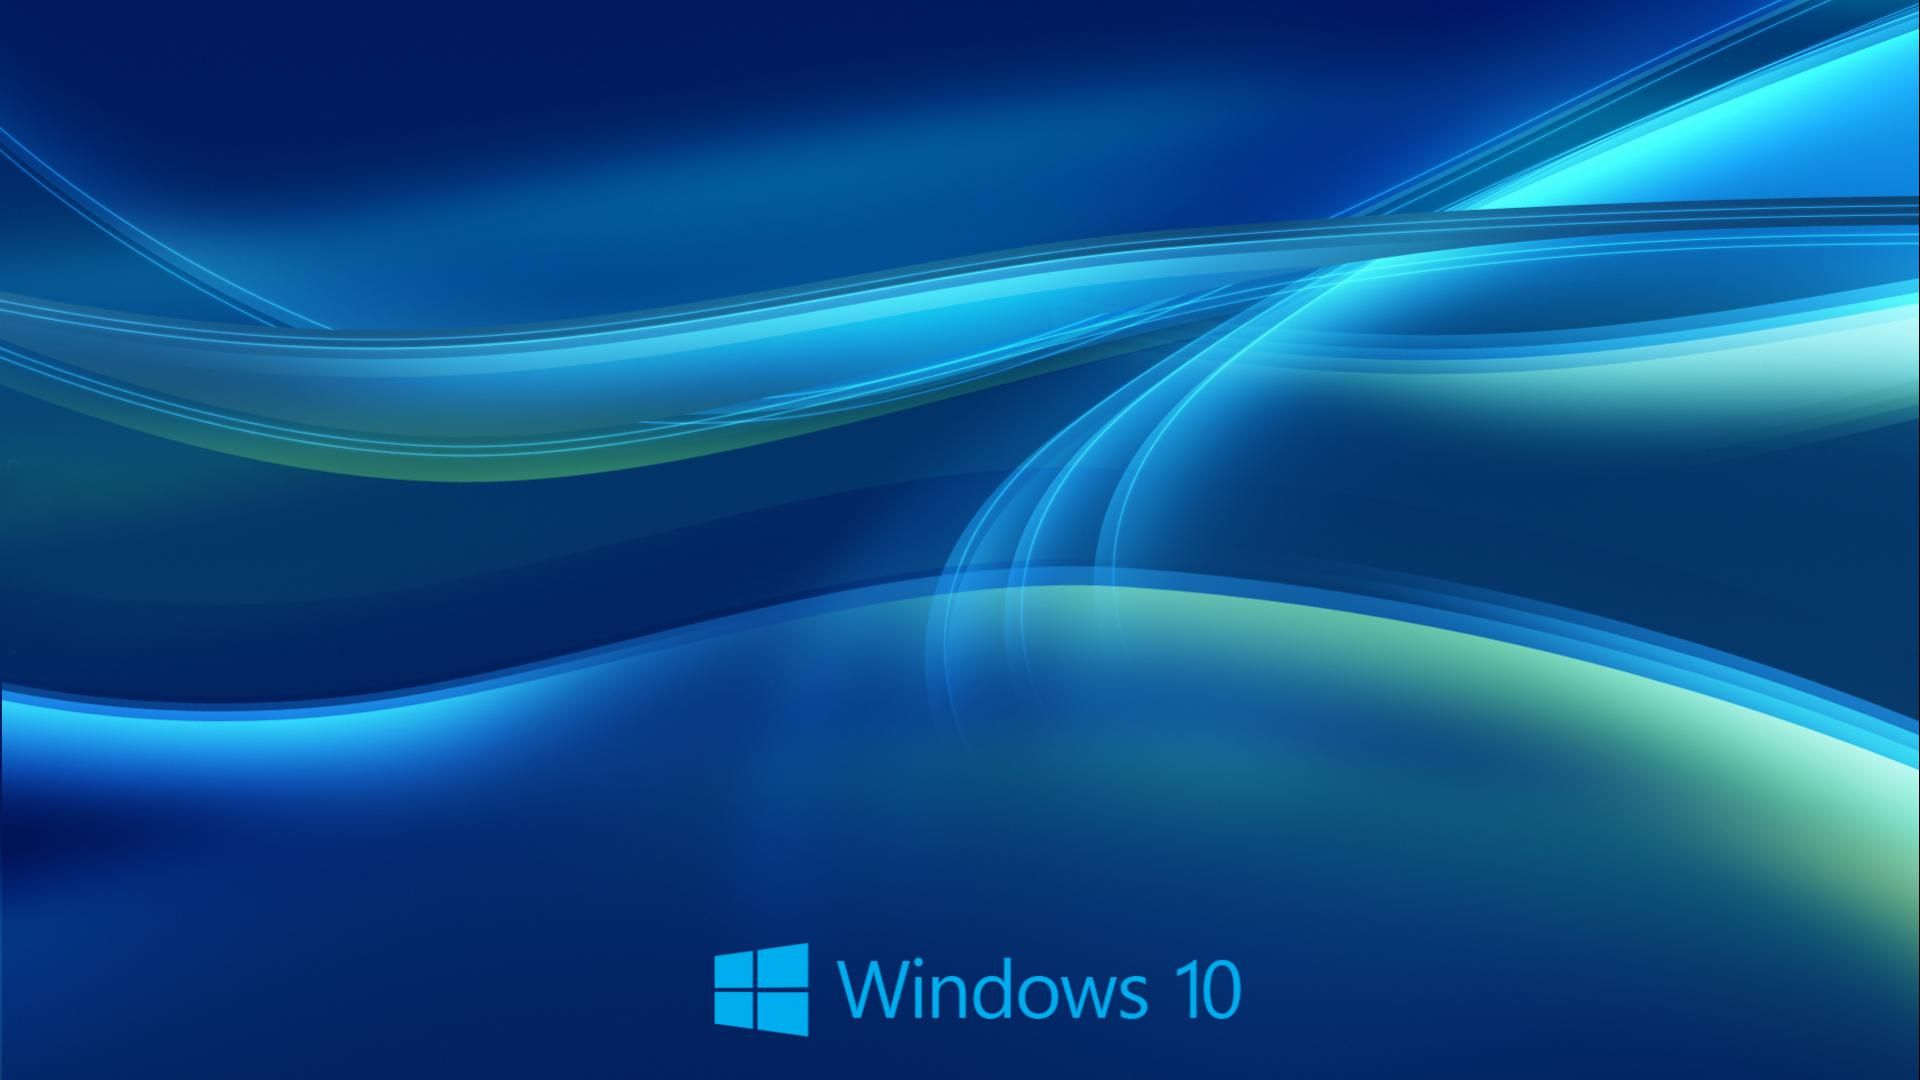 Windows 10 Hd Wallpaper 1920x1080 Wallpapersafari Windows 10